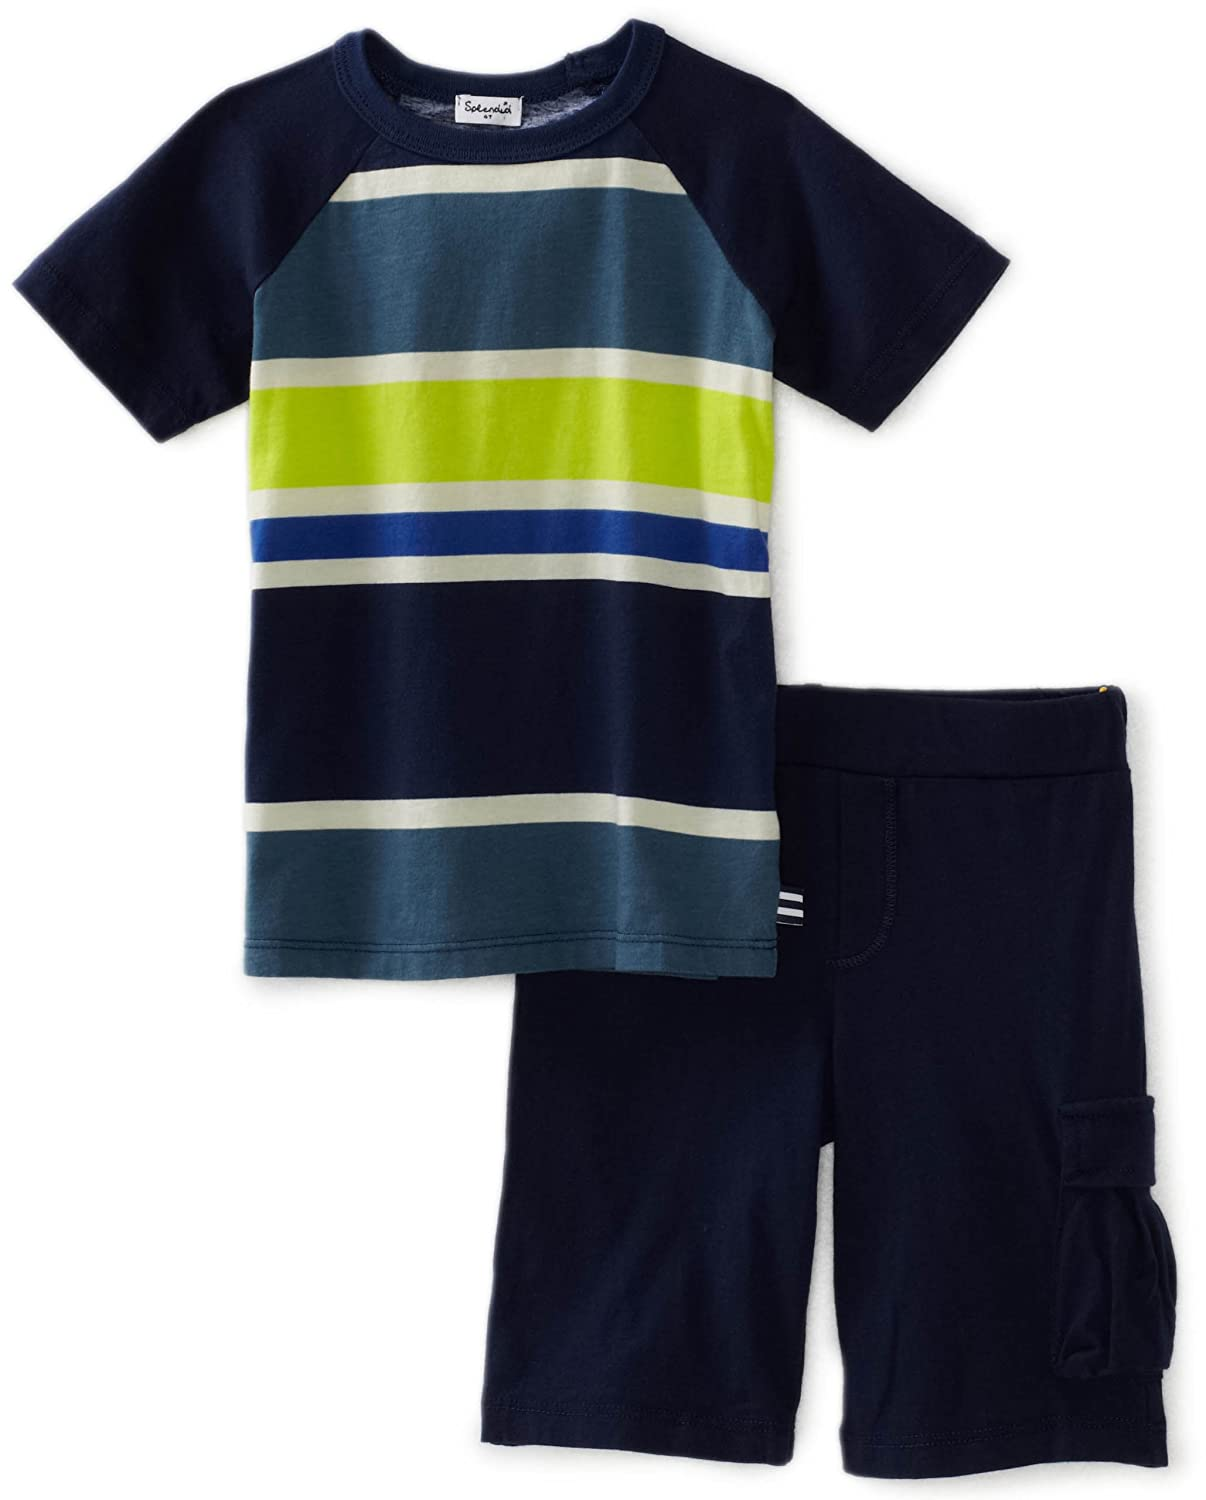 Little Ella Splendid Littles Little Boys Block Stripe Crew Neck Shirt And Short Splendid Littles